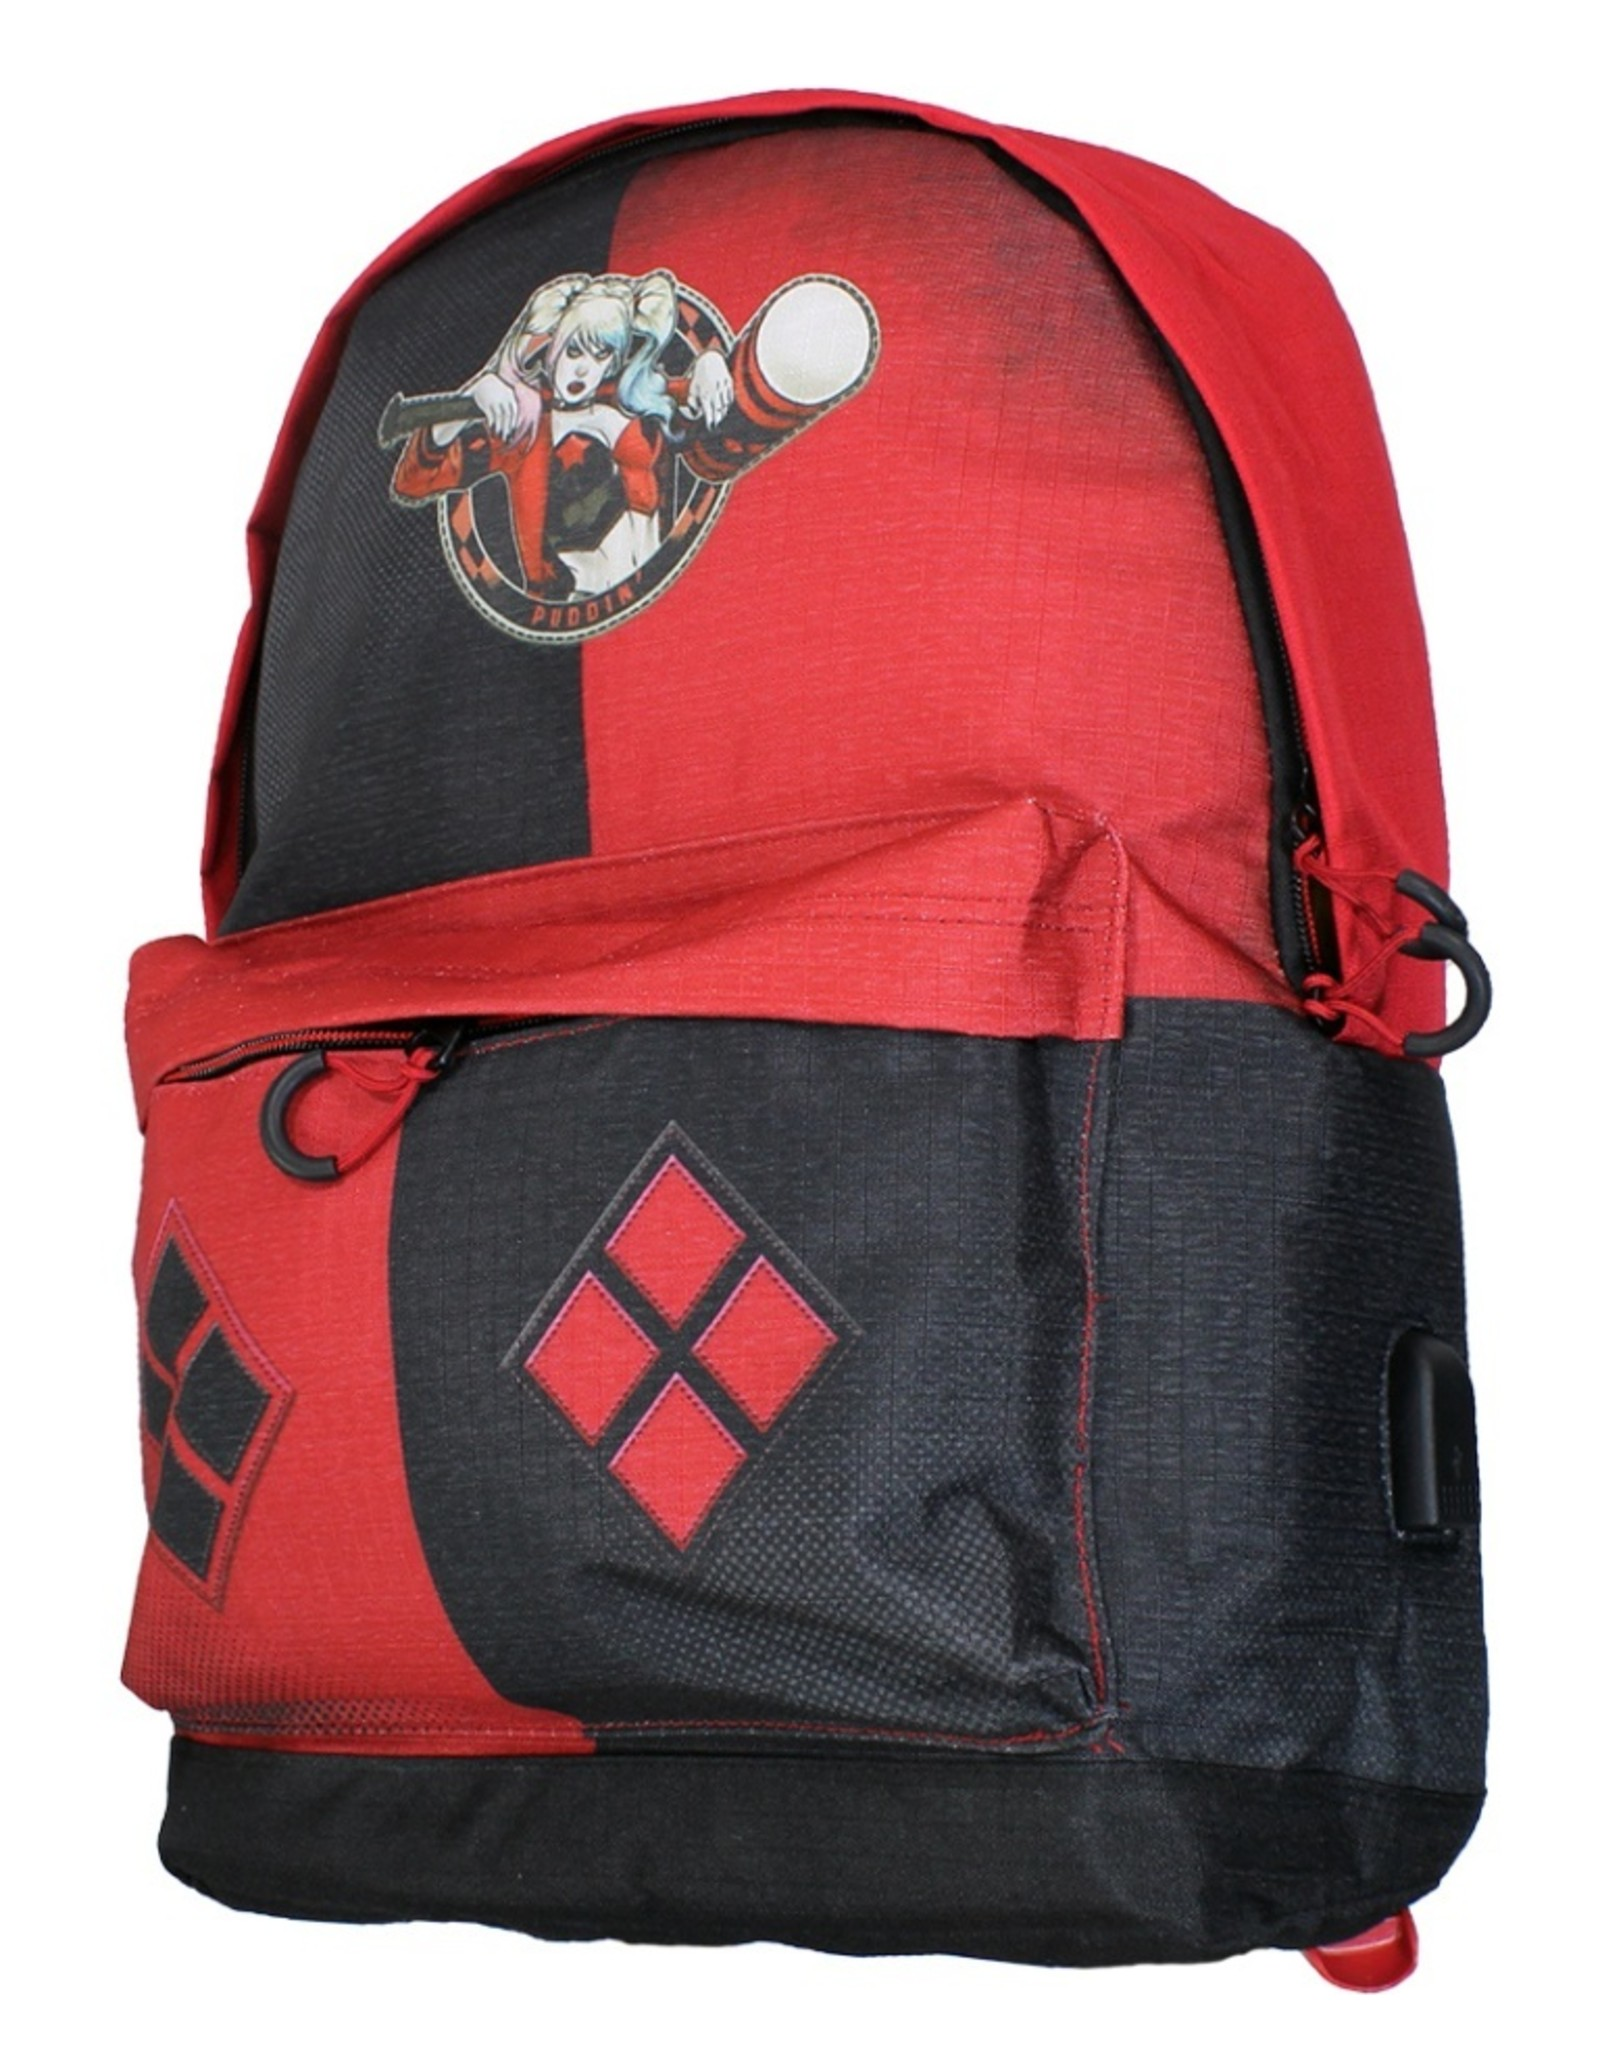 Harley Quinn DC Comics Bags and Wallets - Suicide Squad Harley Quinn backpack